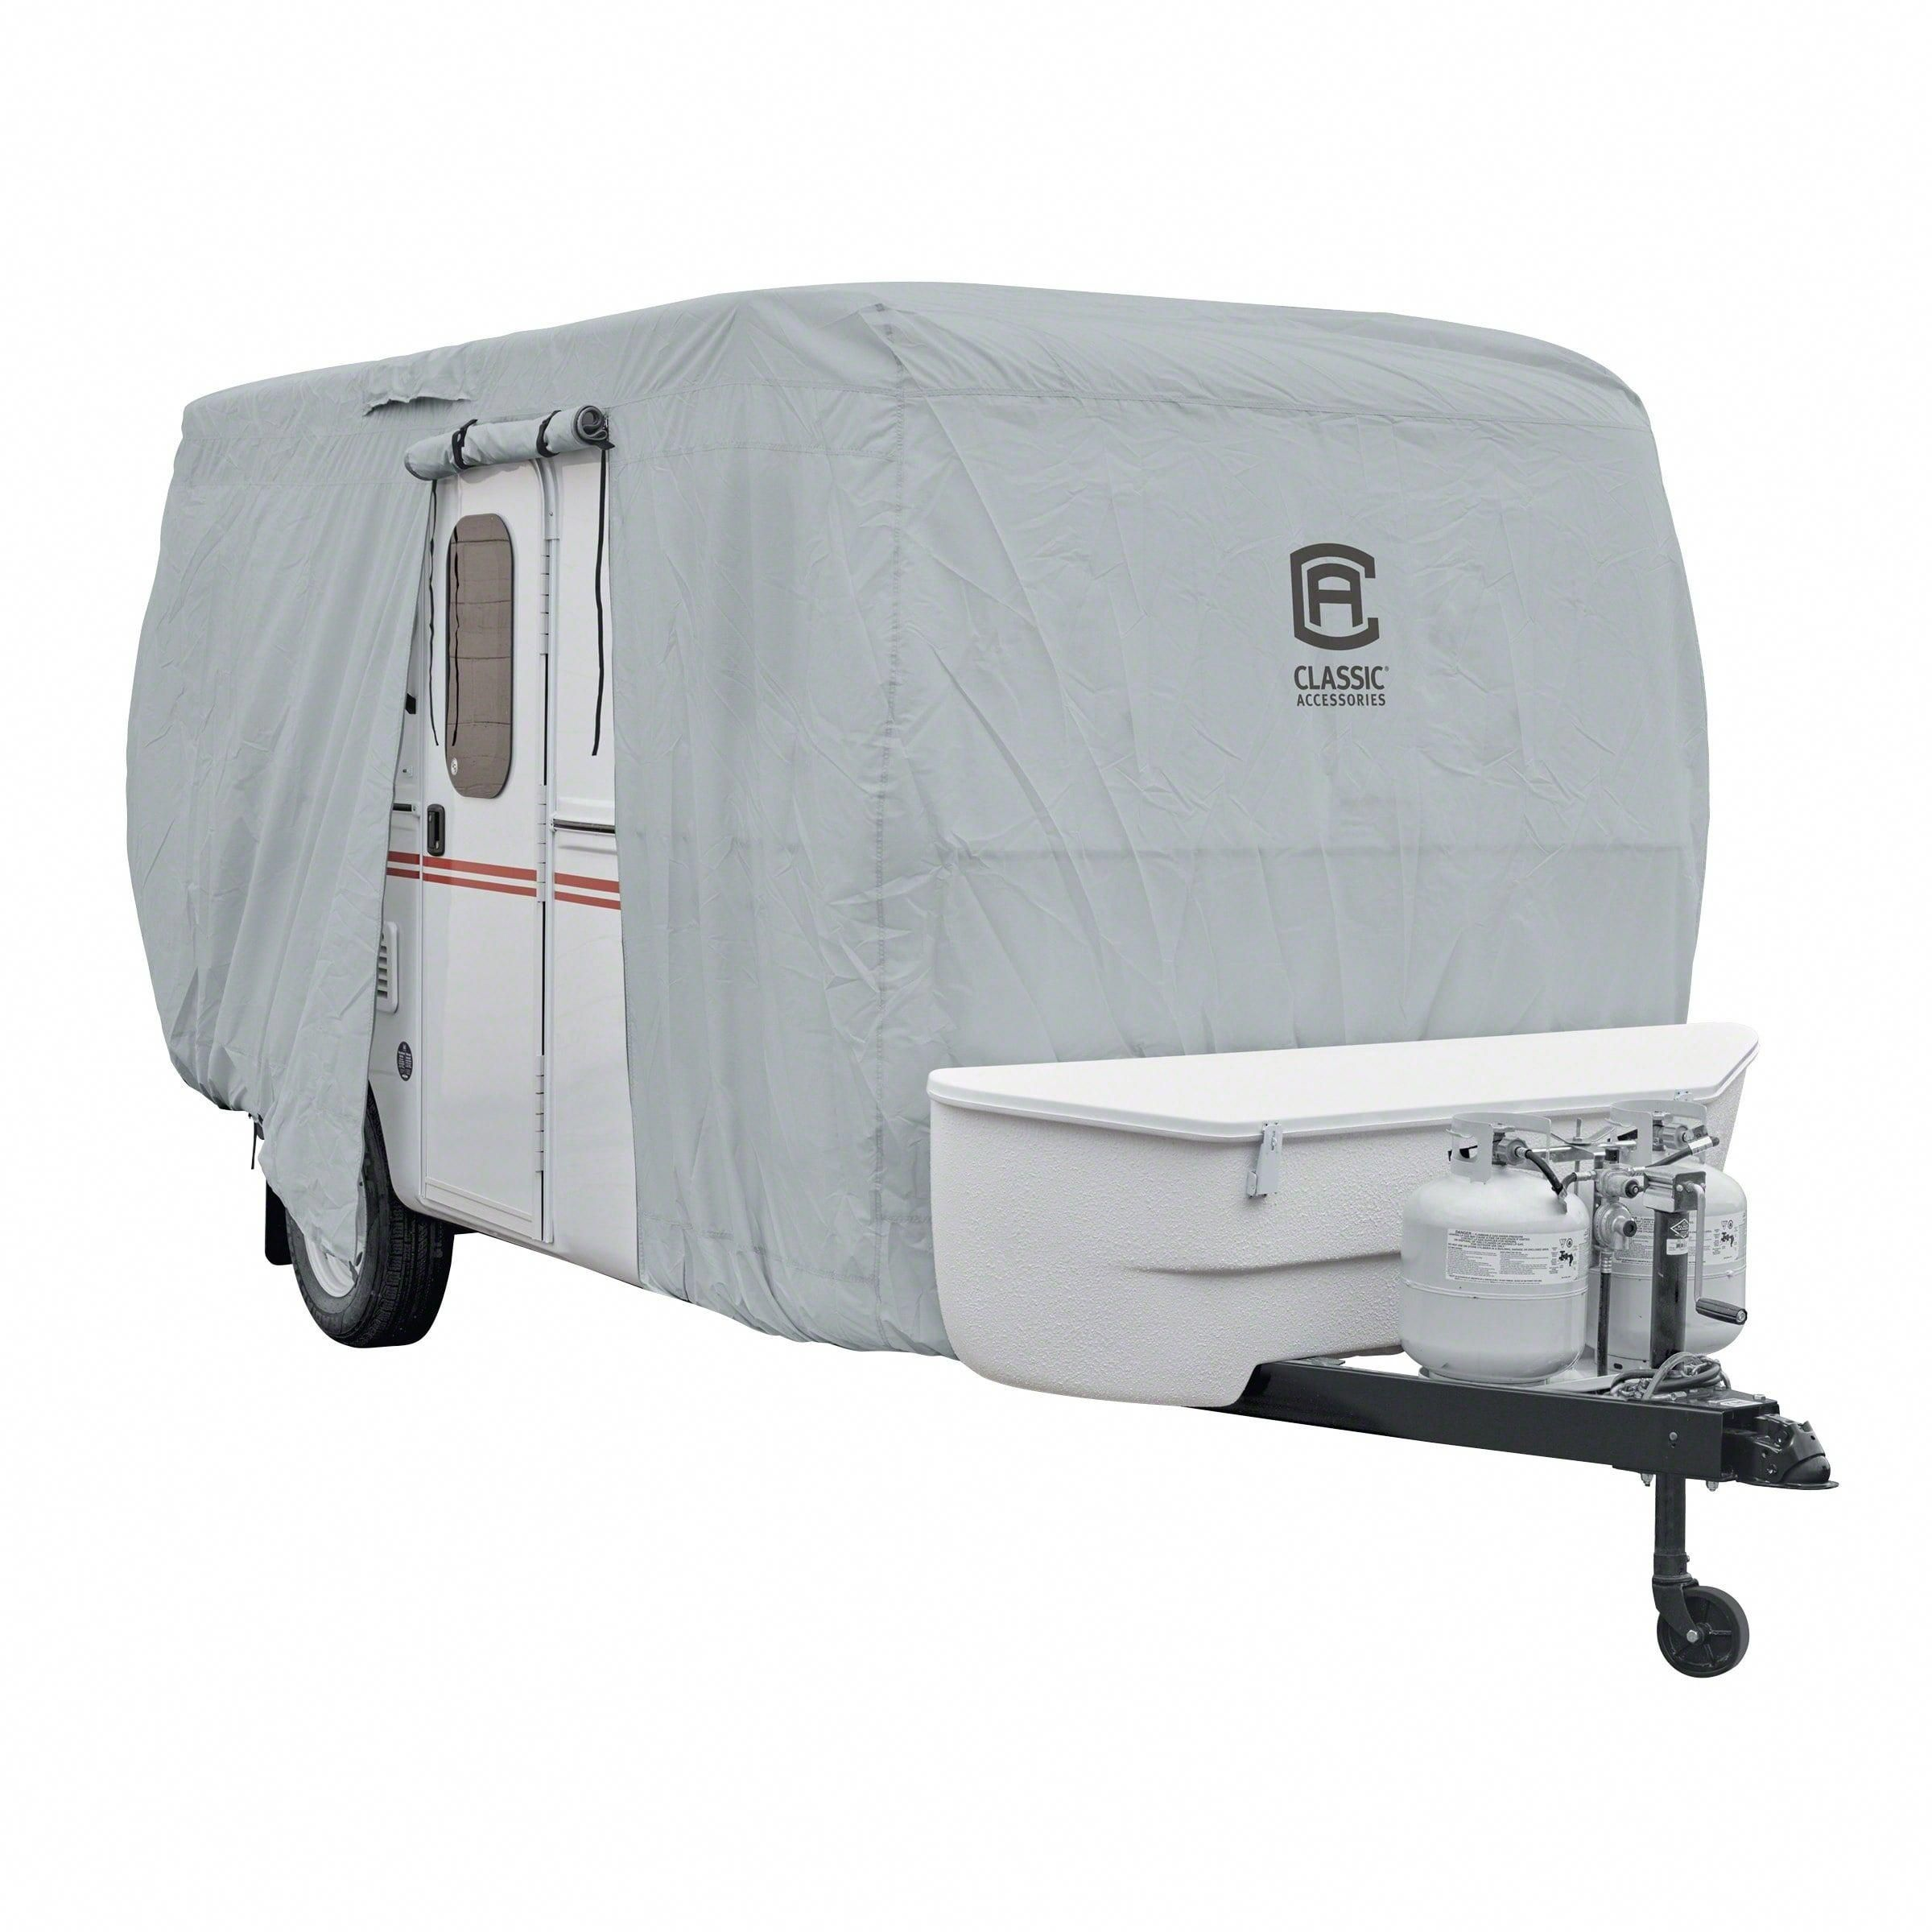 Pin on Towing travel trailers